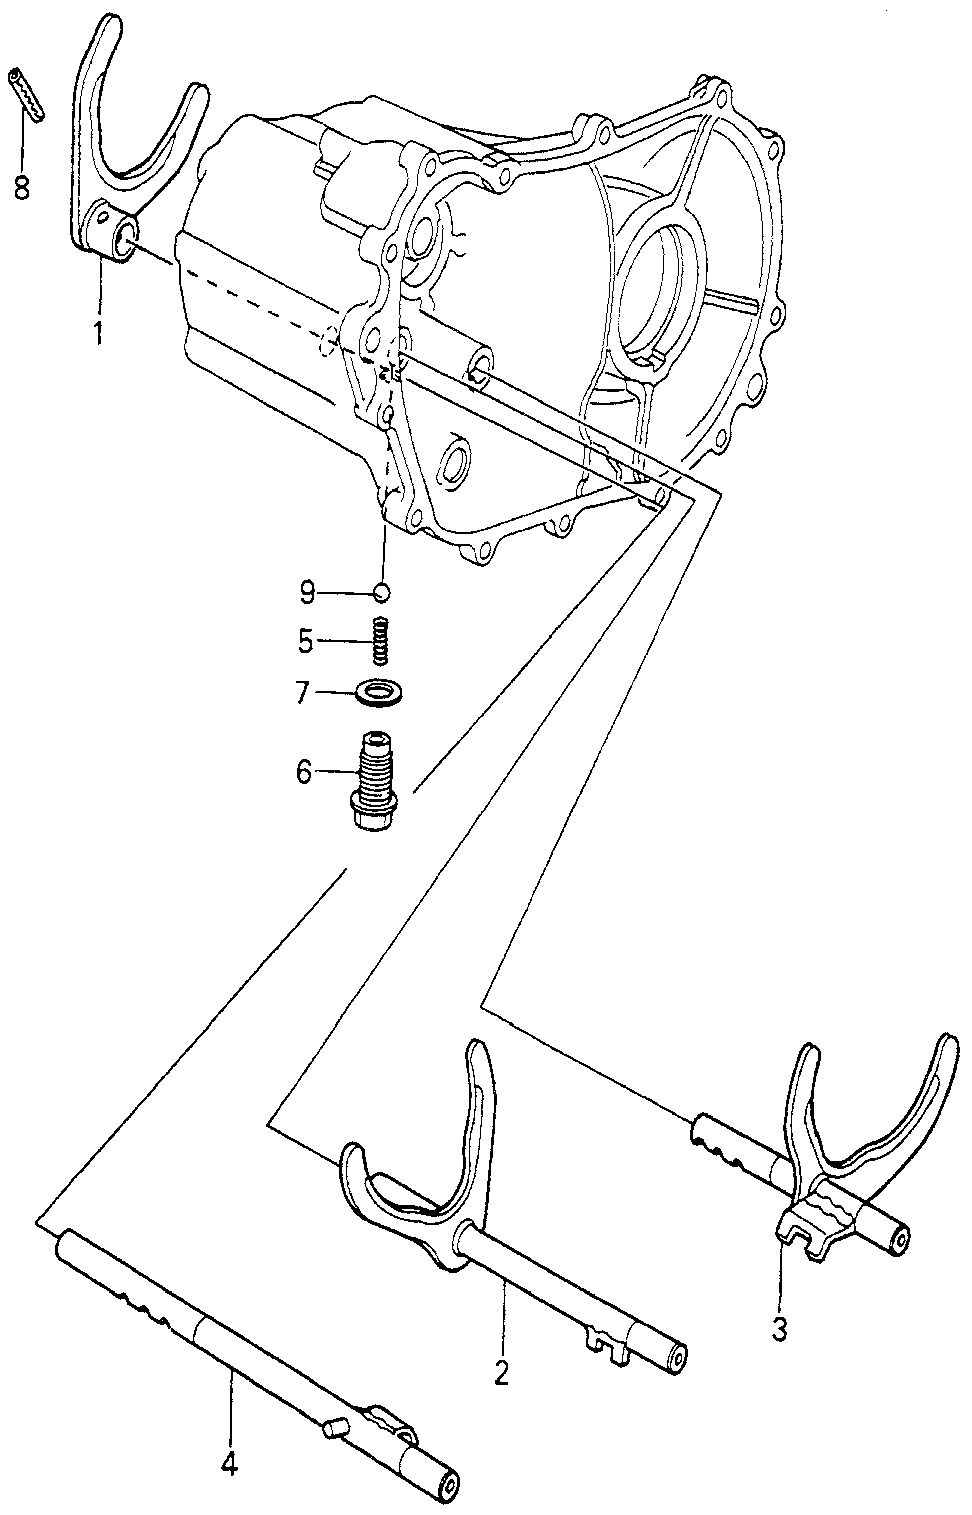 24211-689-000 - FORK, FOURTH GEARSHIFT